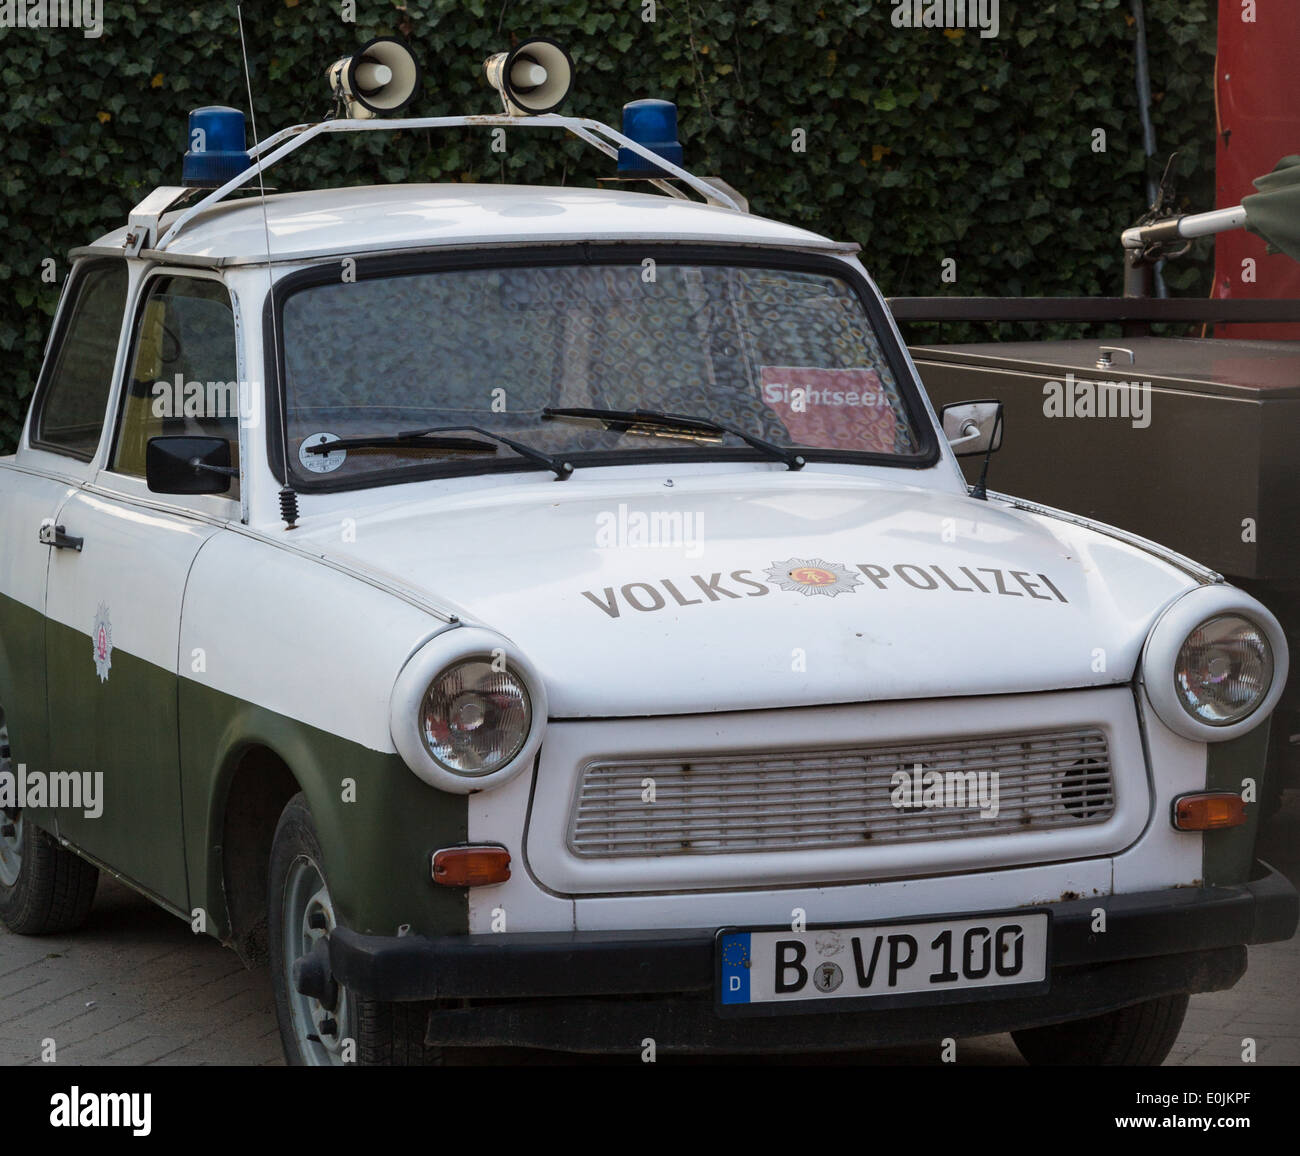 Old East German Police Car In Berlin Germany Stock Photo - Berlin Auto